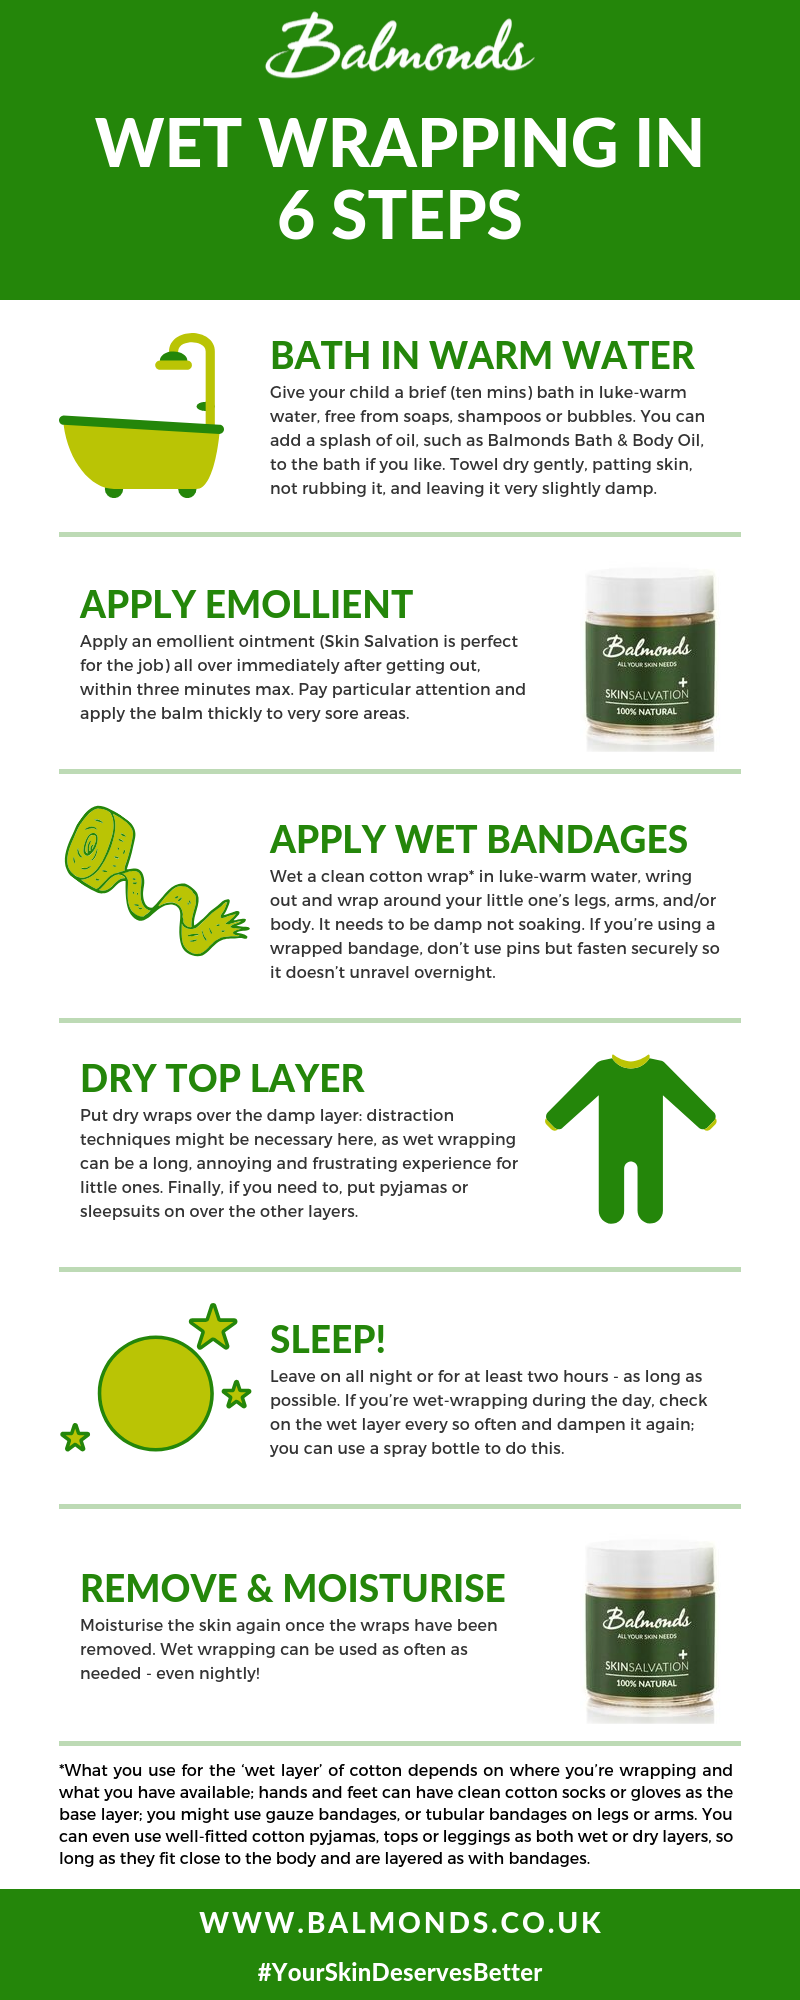 Wet Wrapping in 6 steps